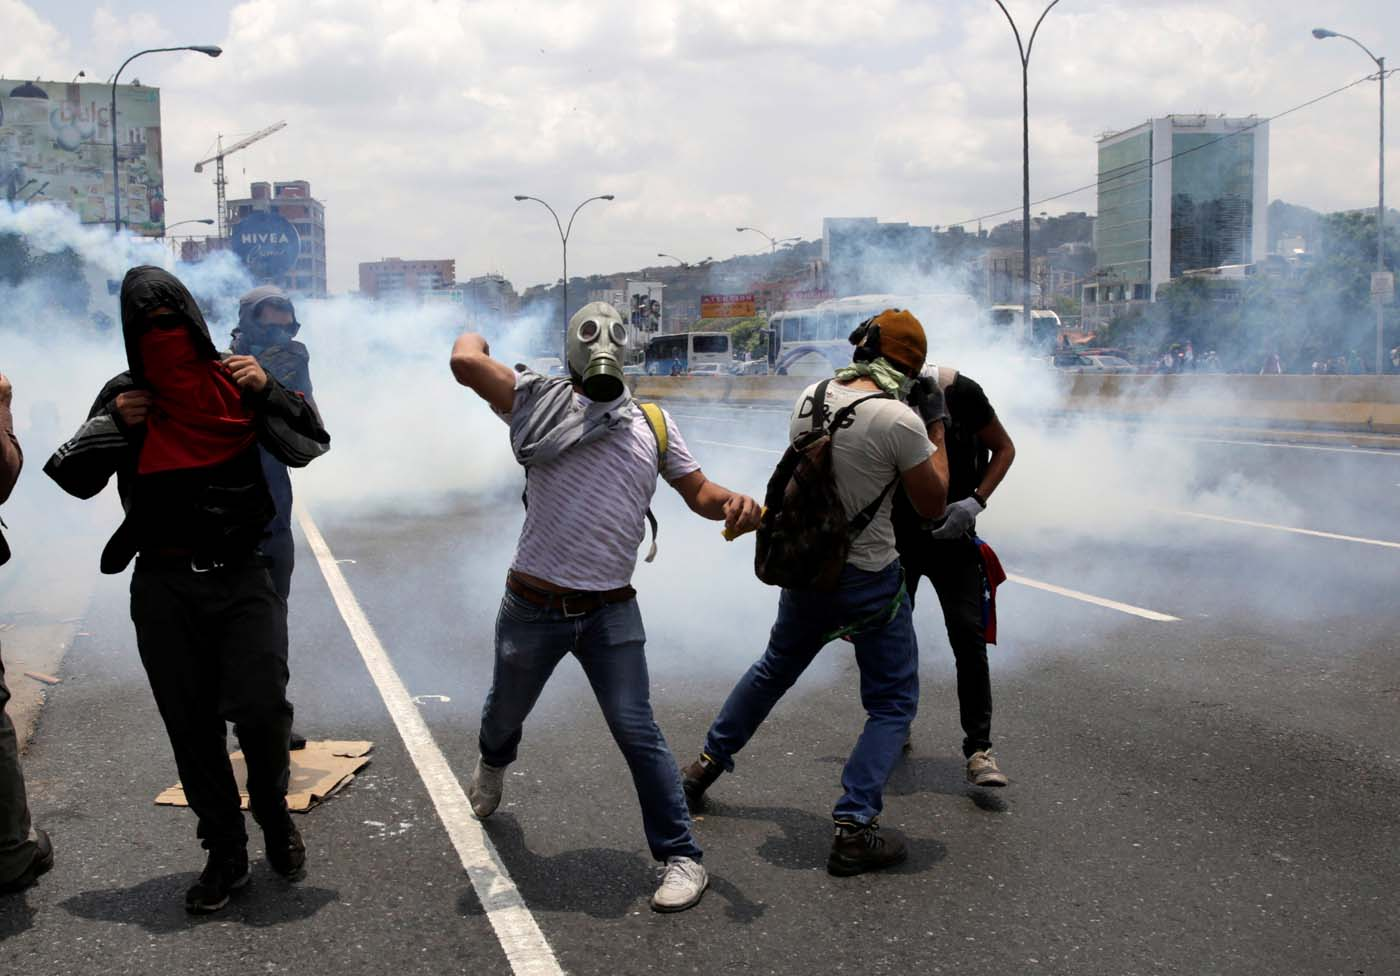 Demonstrators clash with riot police during a rally against Venezuela's President Nicolas Maduro's government in Caracas, Venezuela April 10, 2017. REUTERS/Carlos Garcia Rawlins